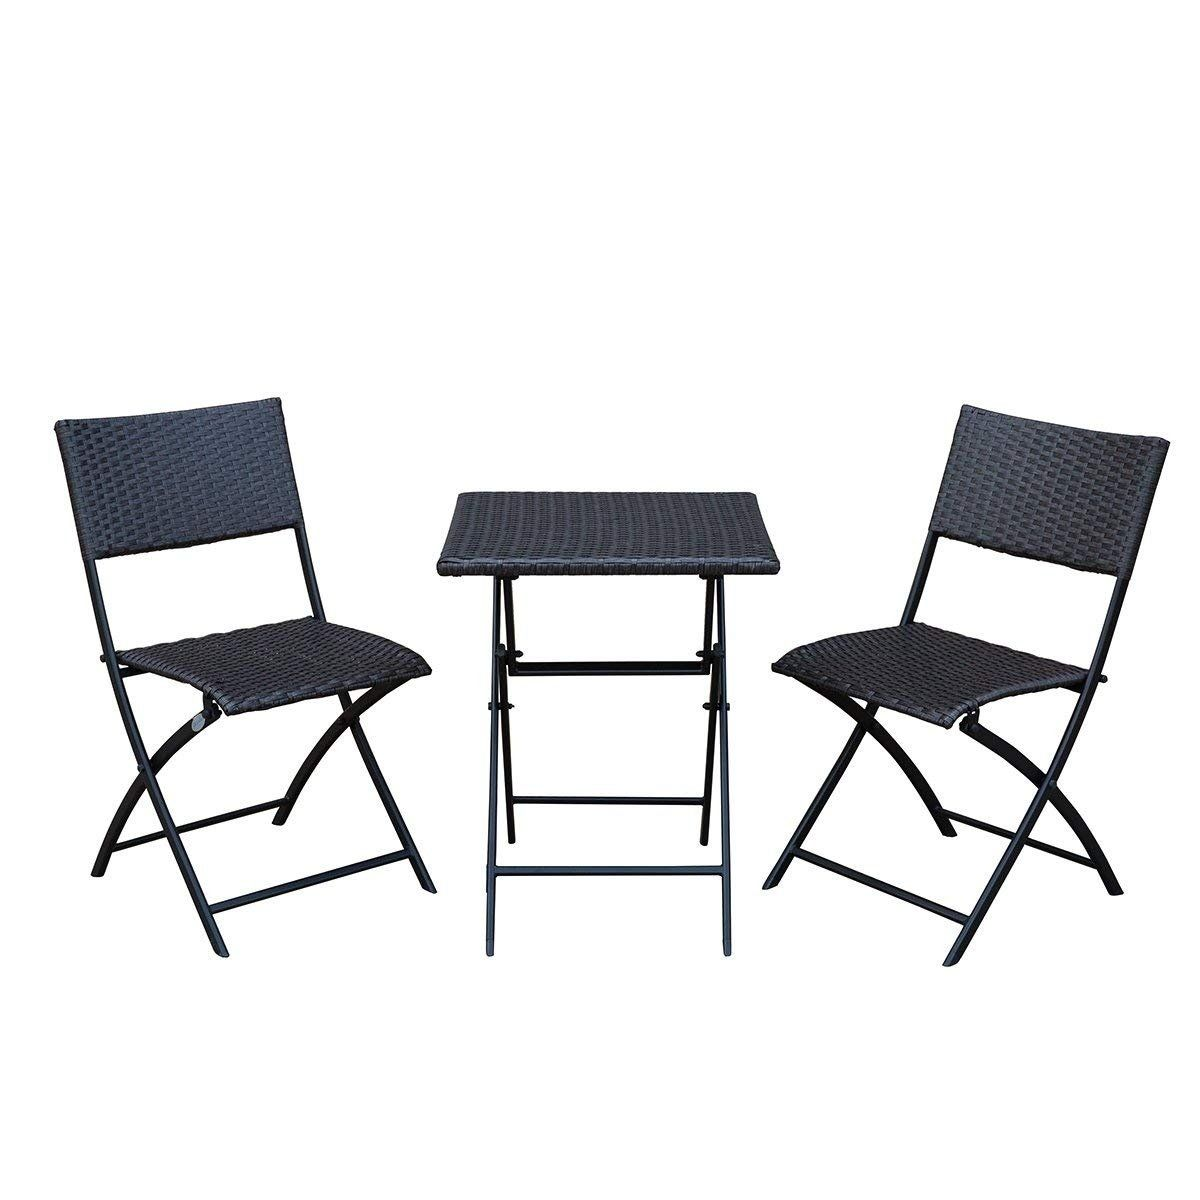 3 Piece Sunlife Bistro Set 3 Folding Square Table 2 Chairs Outdoor Patio Furni Outdoor Folding Table Wicker Patio Furniture Outdoor Furniture Sets